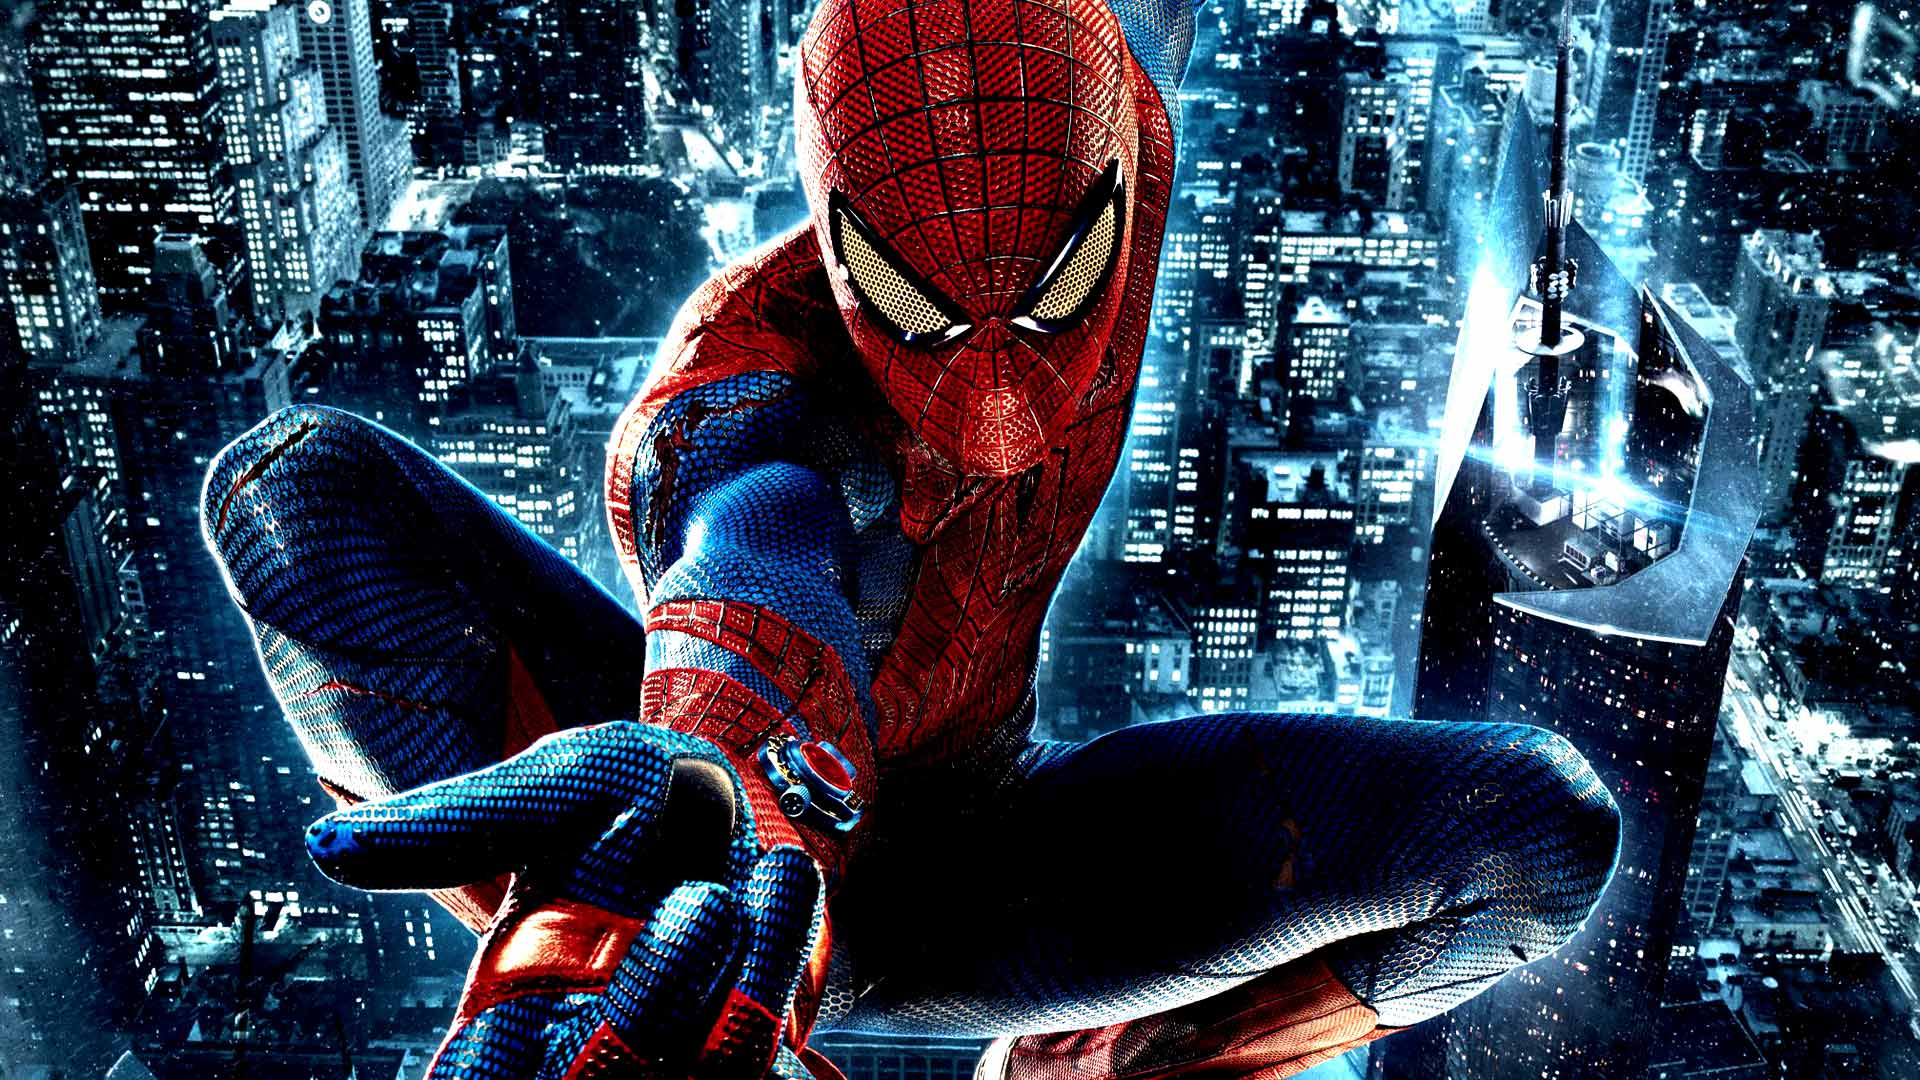 1920x1080 37+ Spider Man 2 Wallpapers, HD Quality Spider Man 2 Images, Spider ...